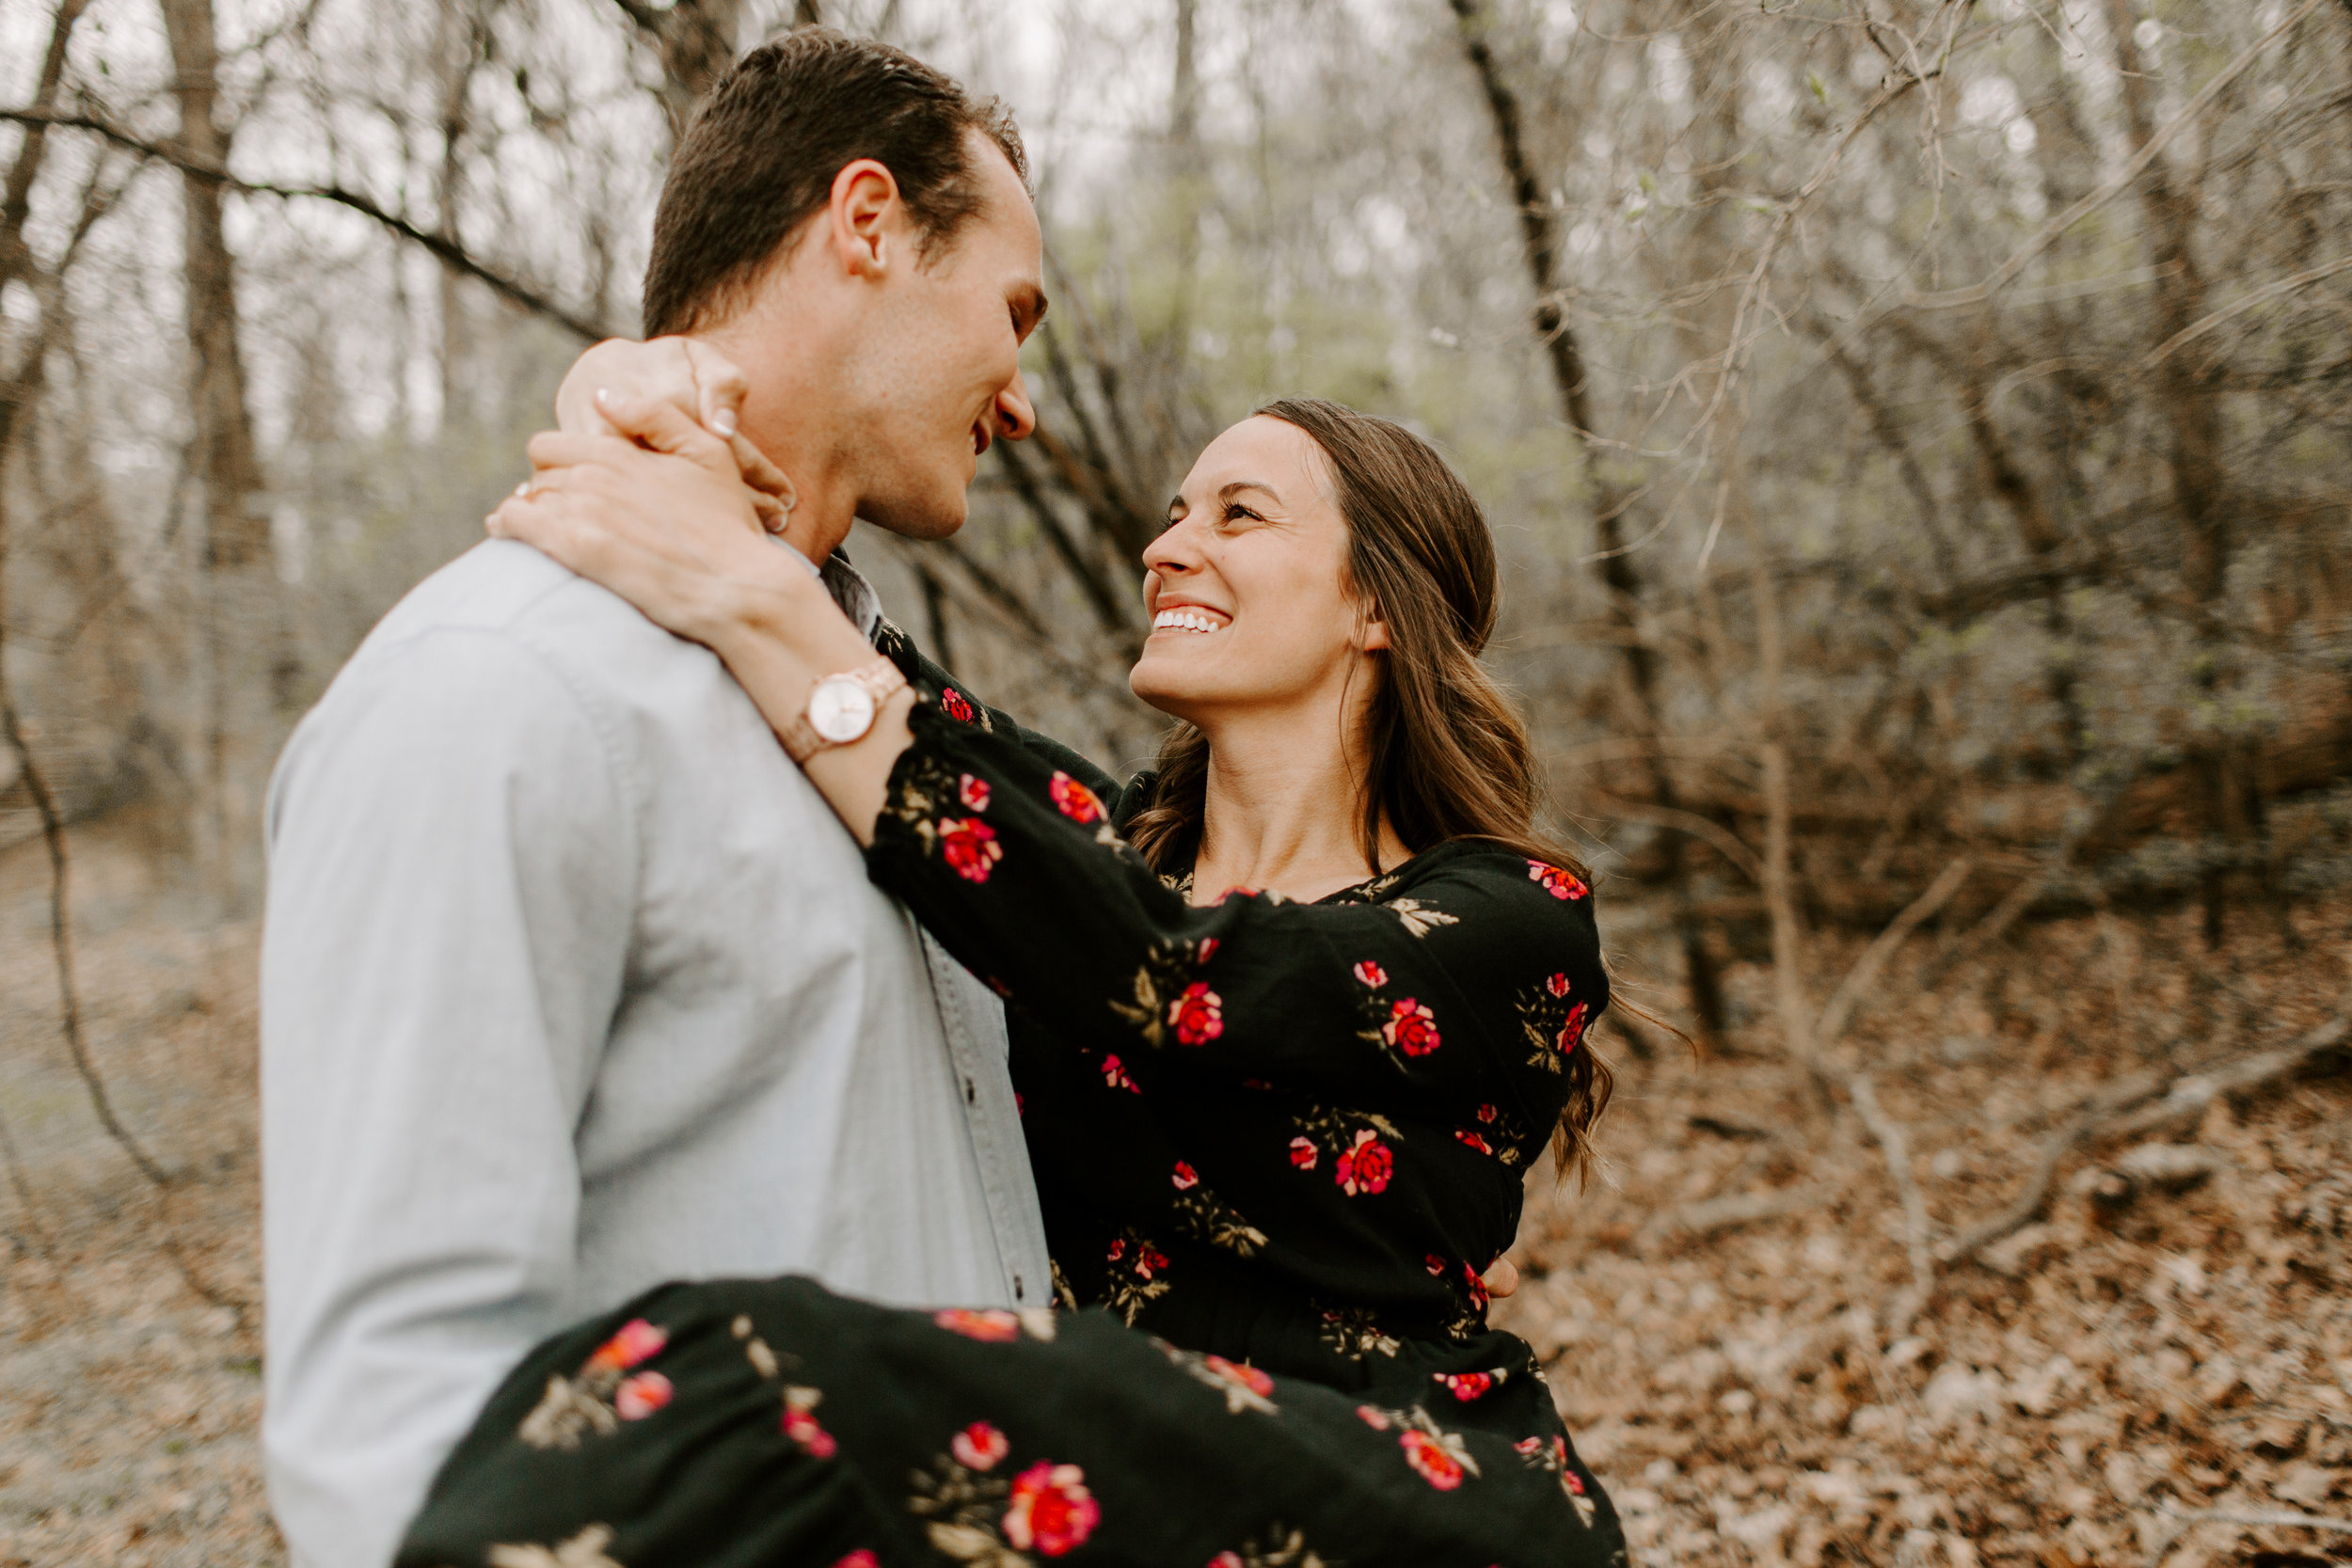 2018.03.16_kayleematt_nashville_engagement_elissavossphotography_previews_09.jpg